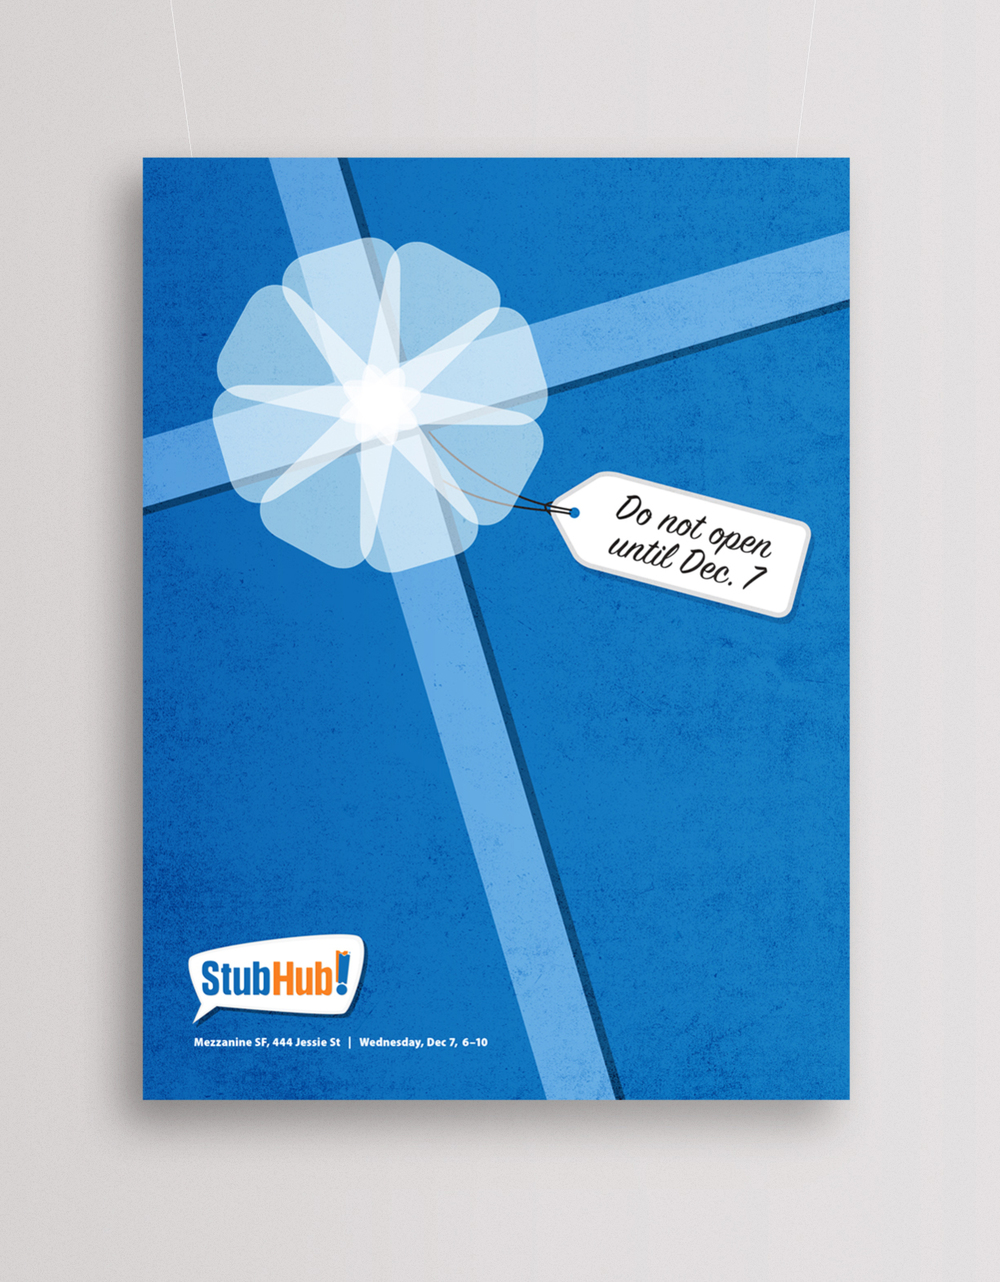 stubhub_Holiday-2011_Poster.jpg